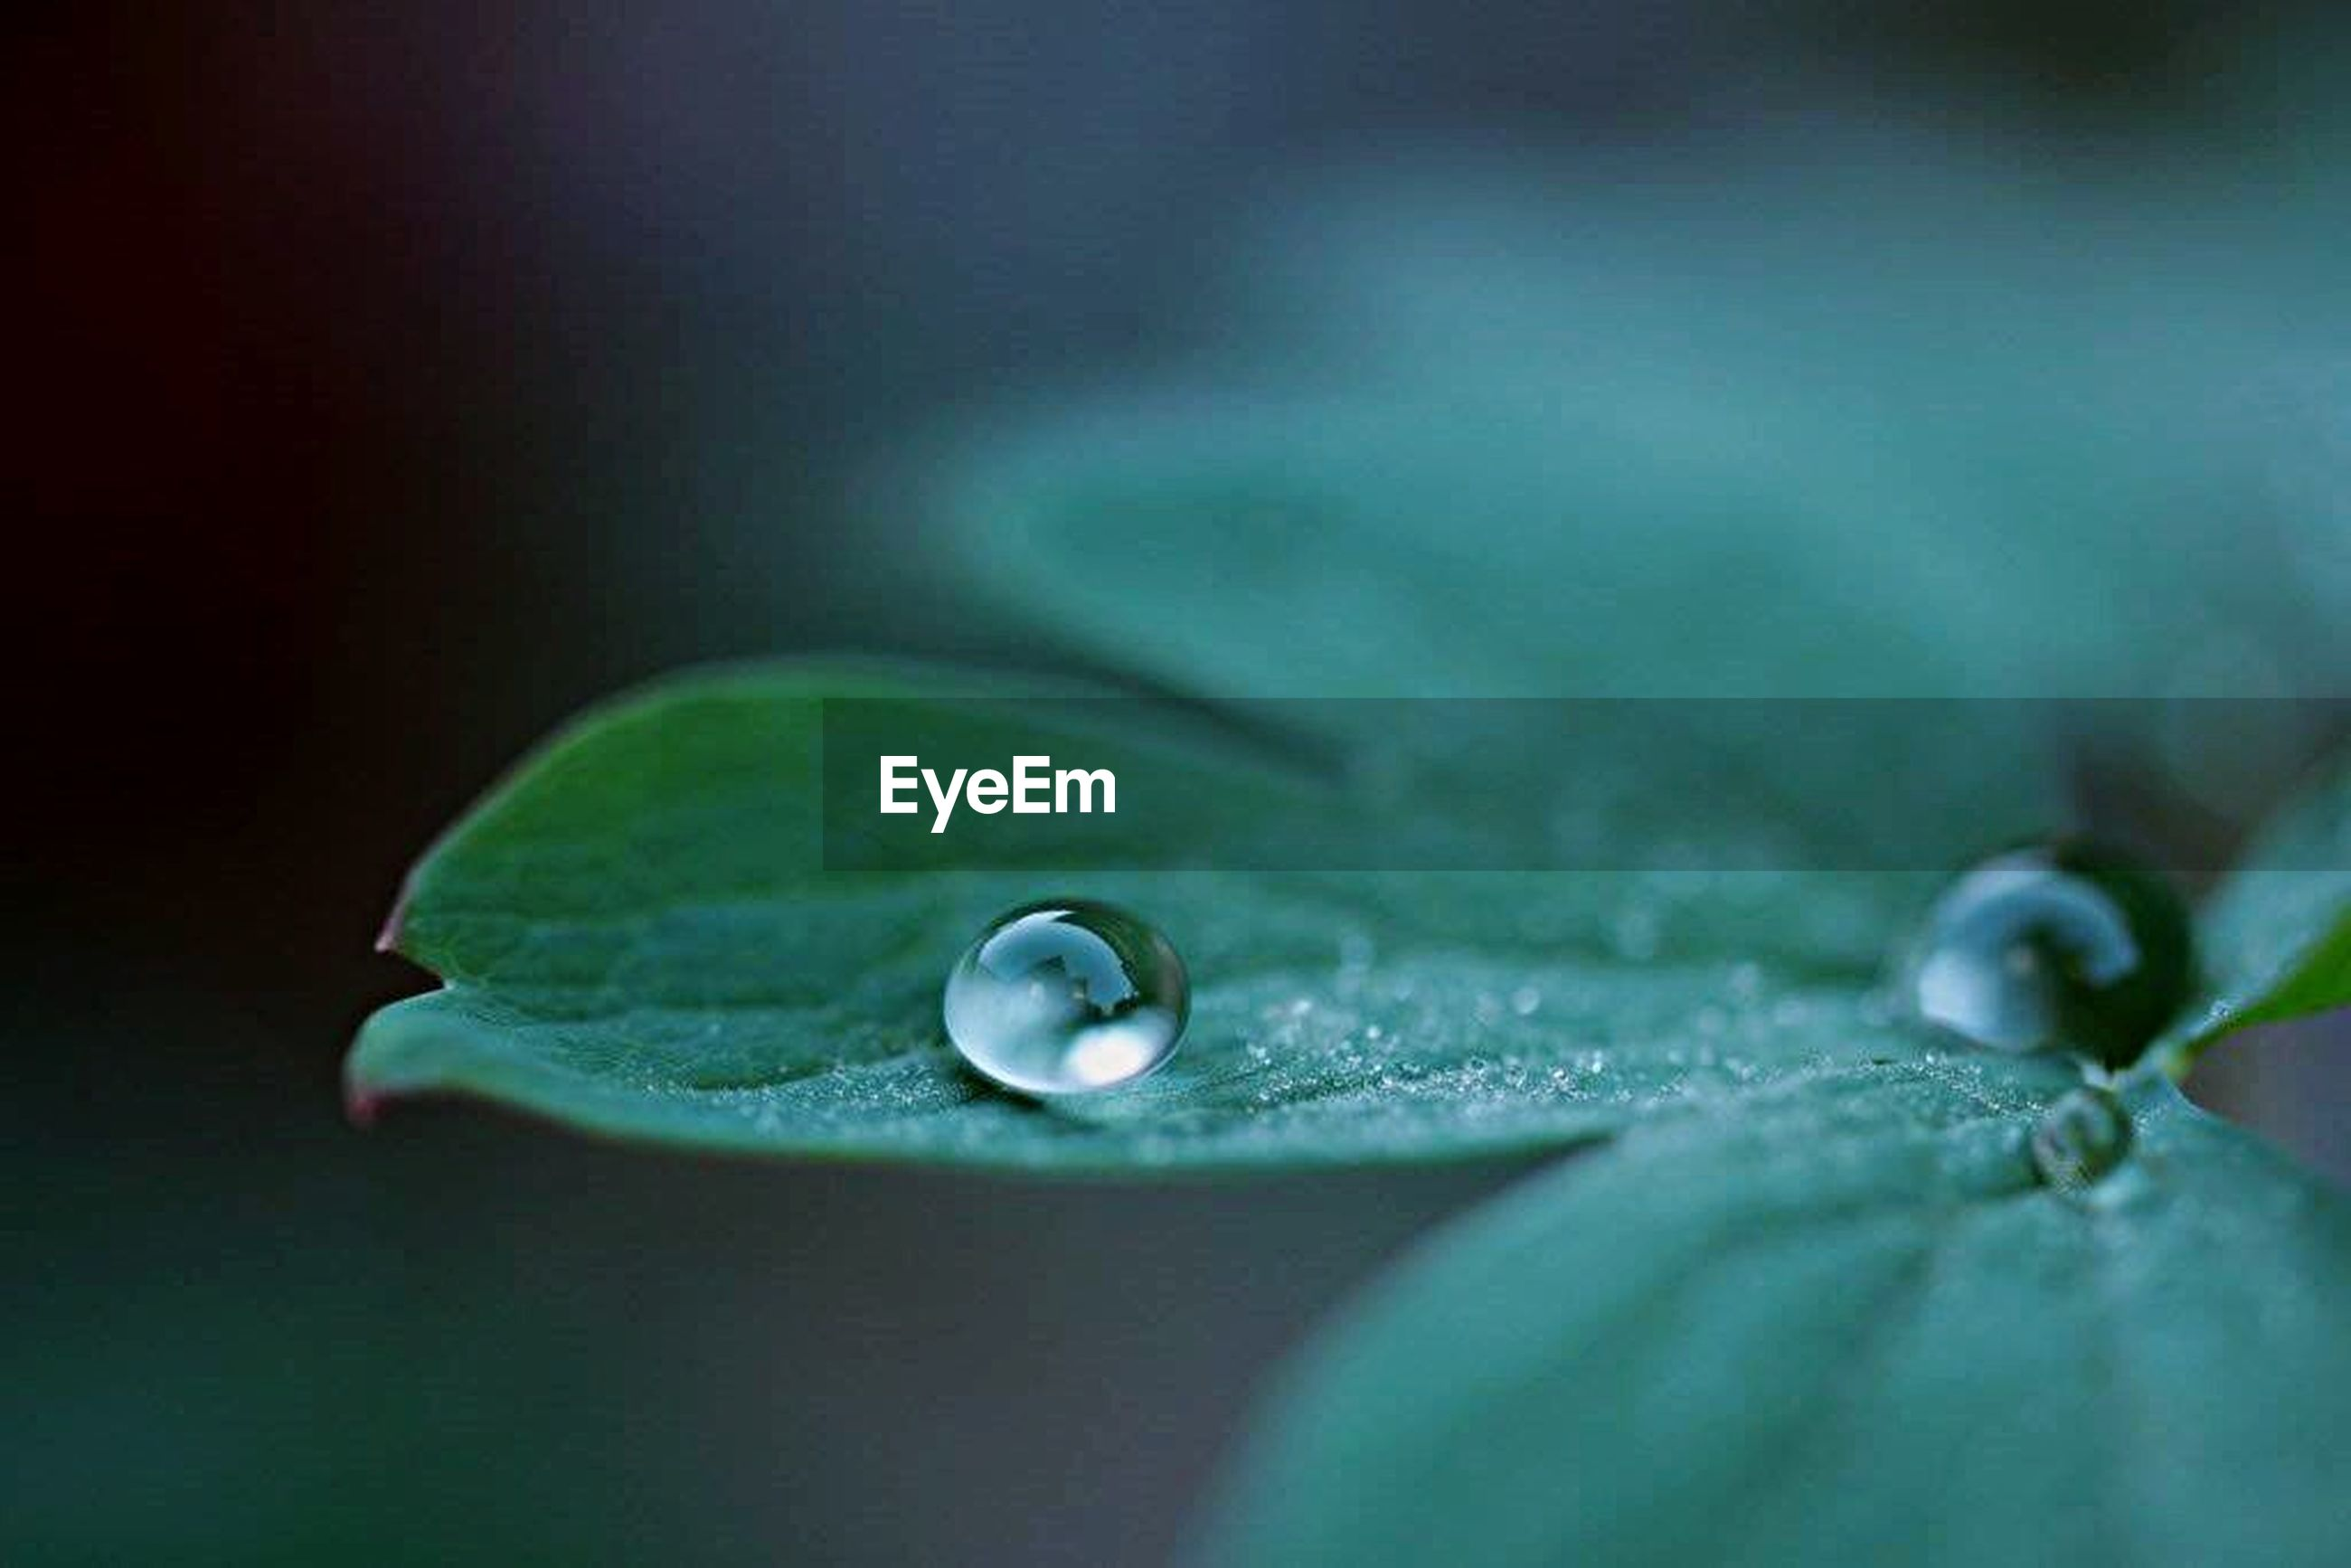 water, drop, close-up, wet, green color, leaf, selective focus, freshness, fragility, nature, purity, focus on foreground, water drop, beauty in nature, droplet, dew, no people, detail, plant, raindrop